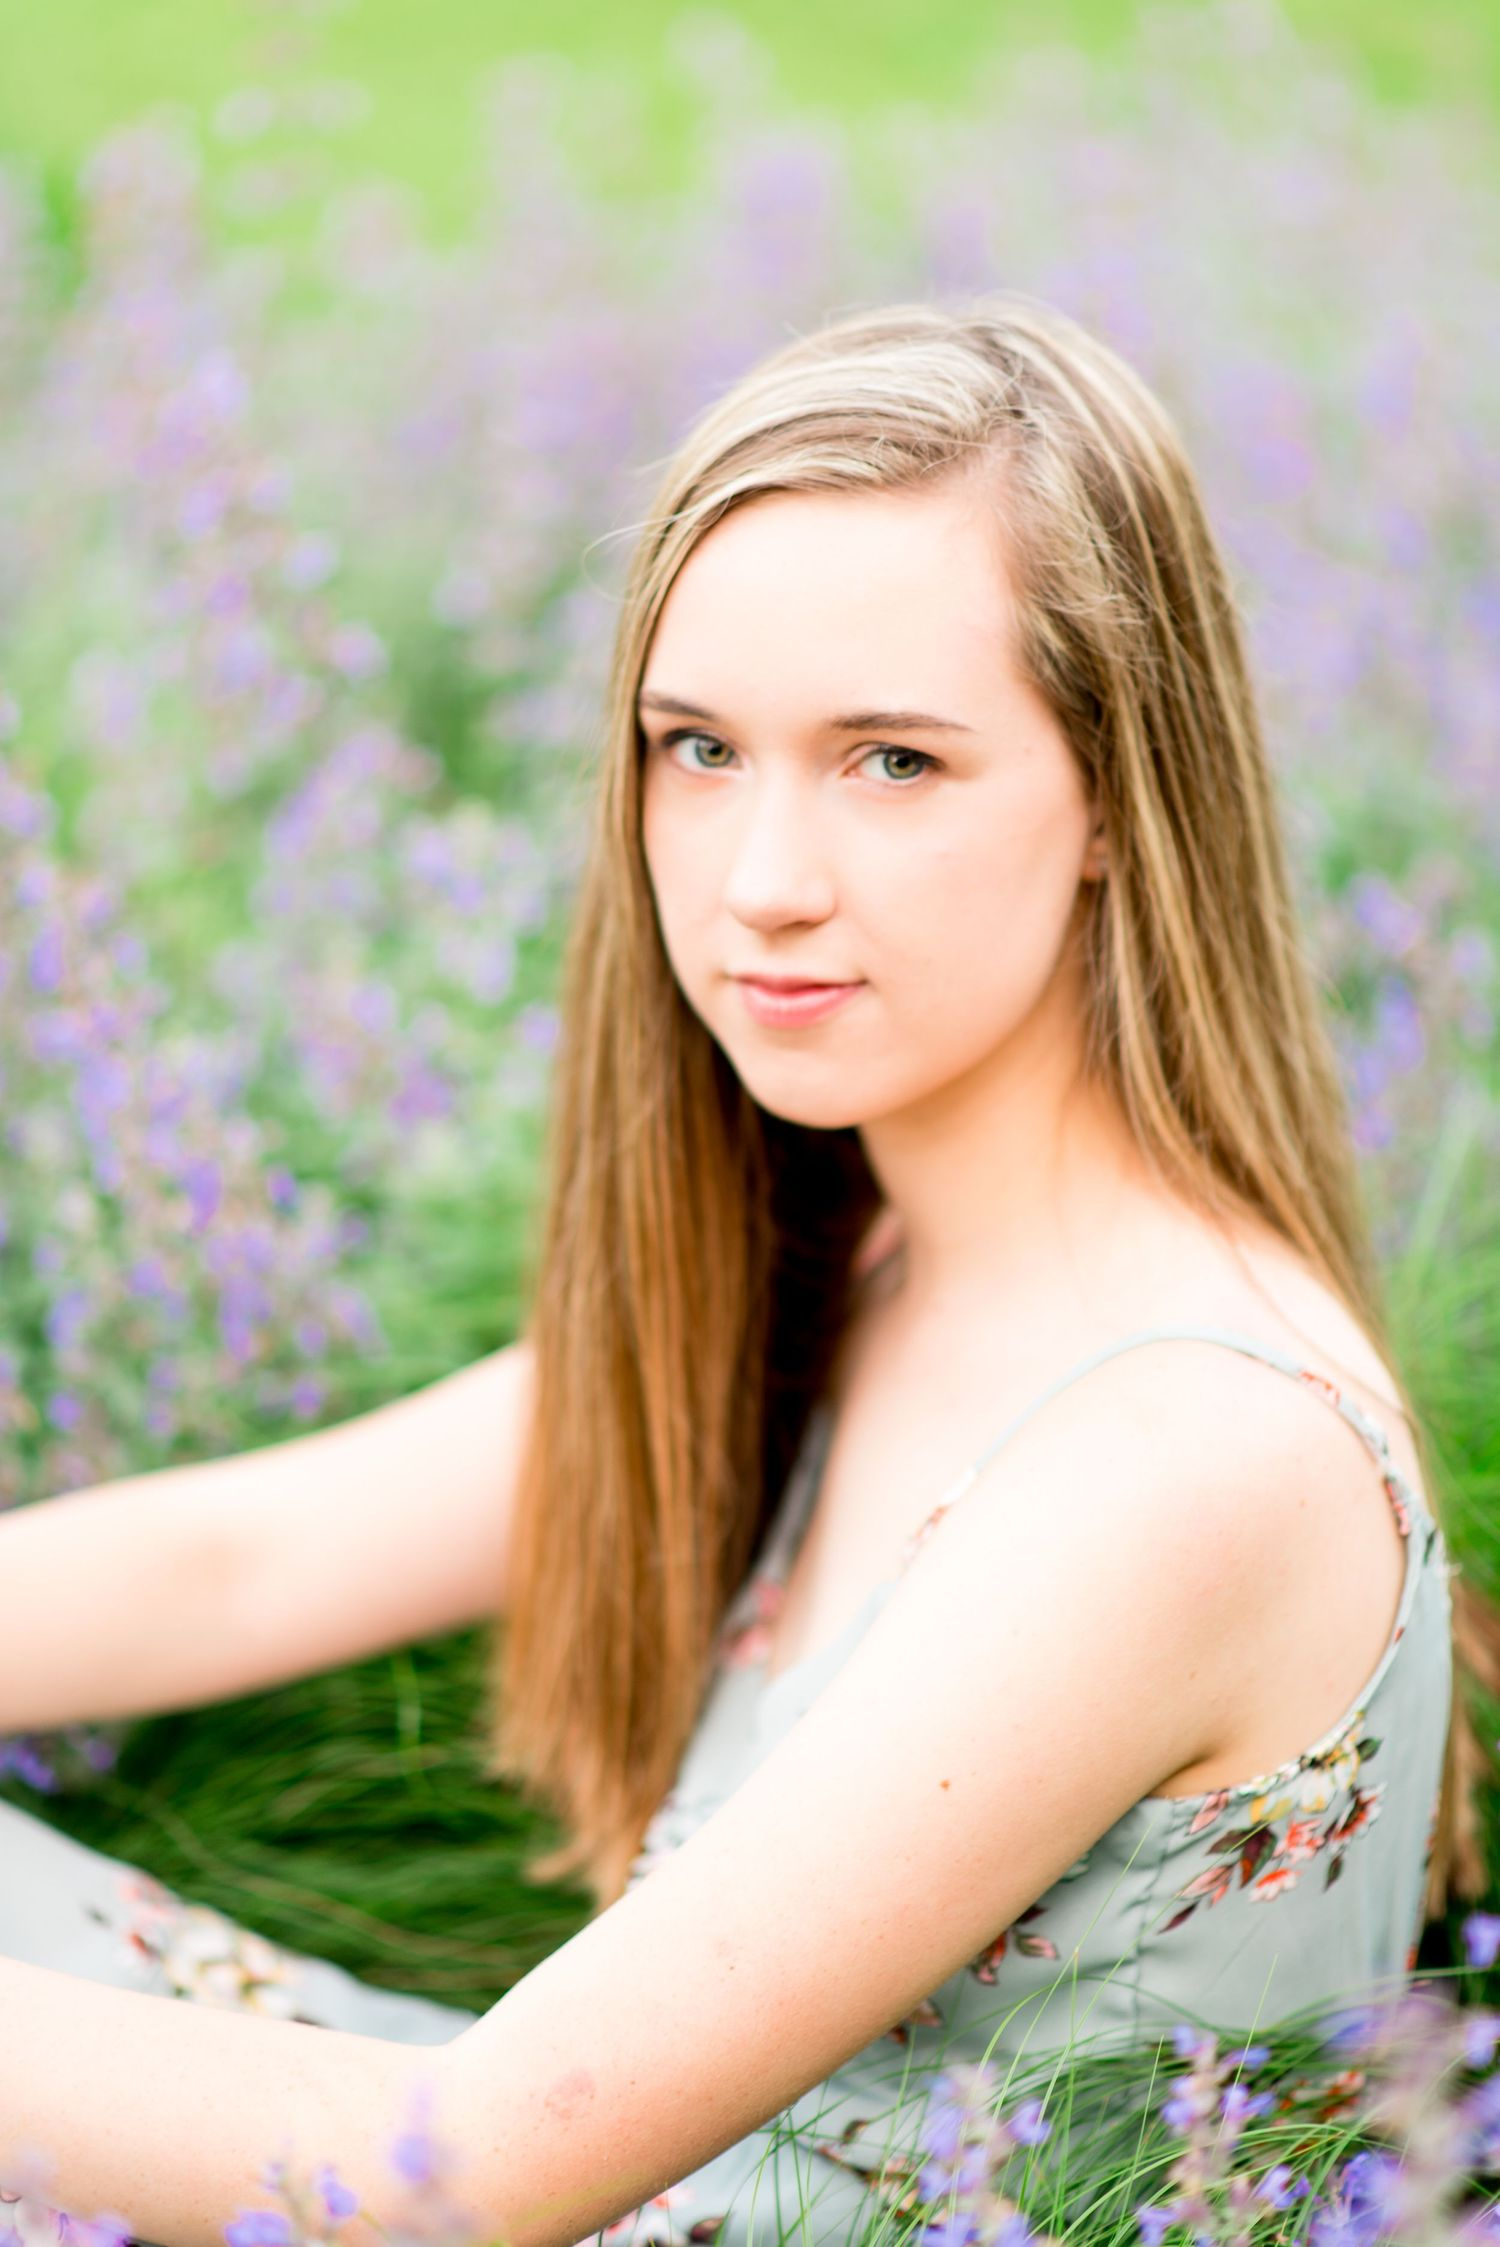 young woman with green eyes sits in a field of lavender in Chicago Lurie Garden for senior pictures